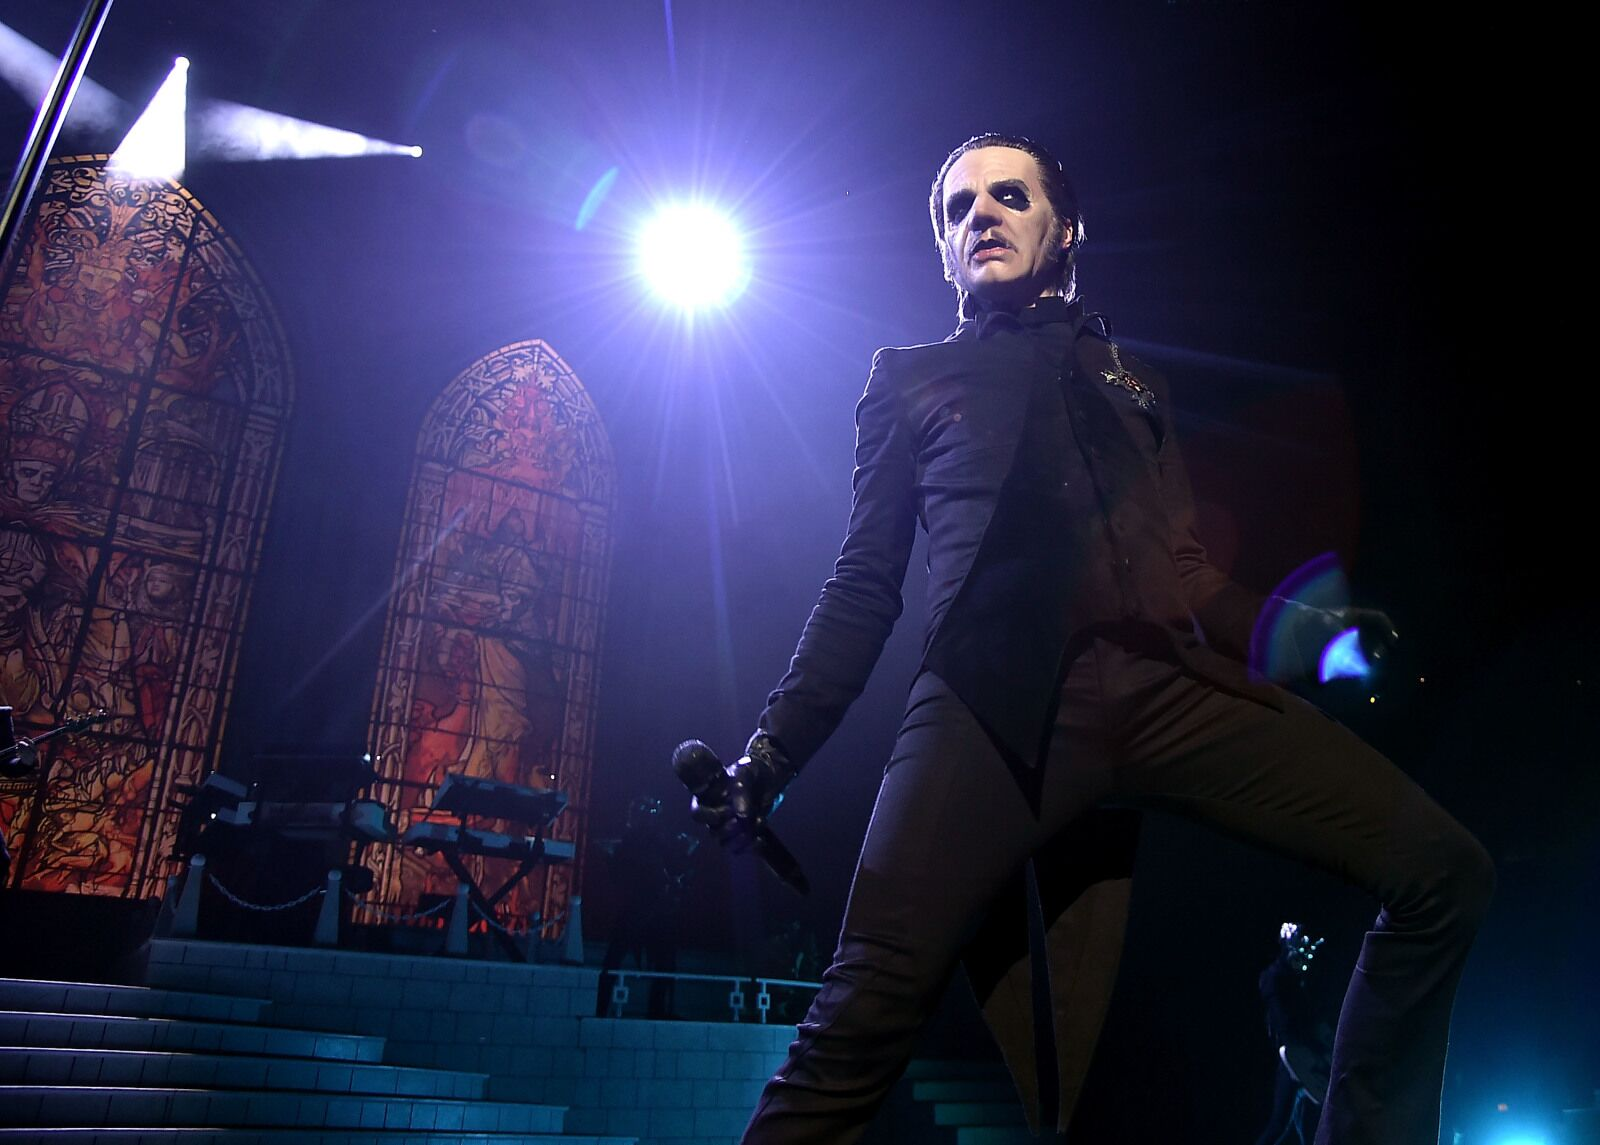 Ghost: A chat with Tobias Forge; is an instrumental album in the future?